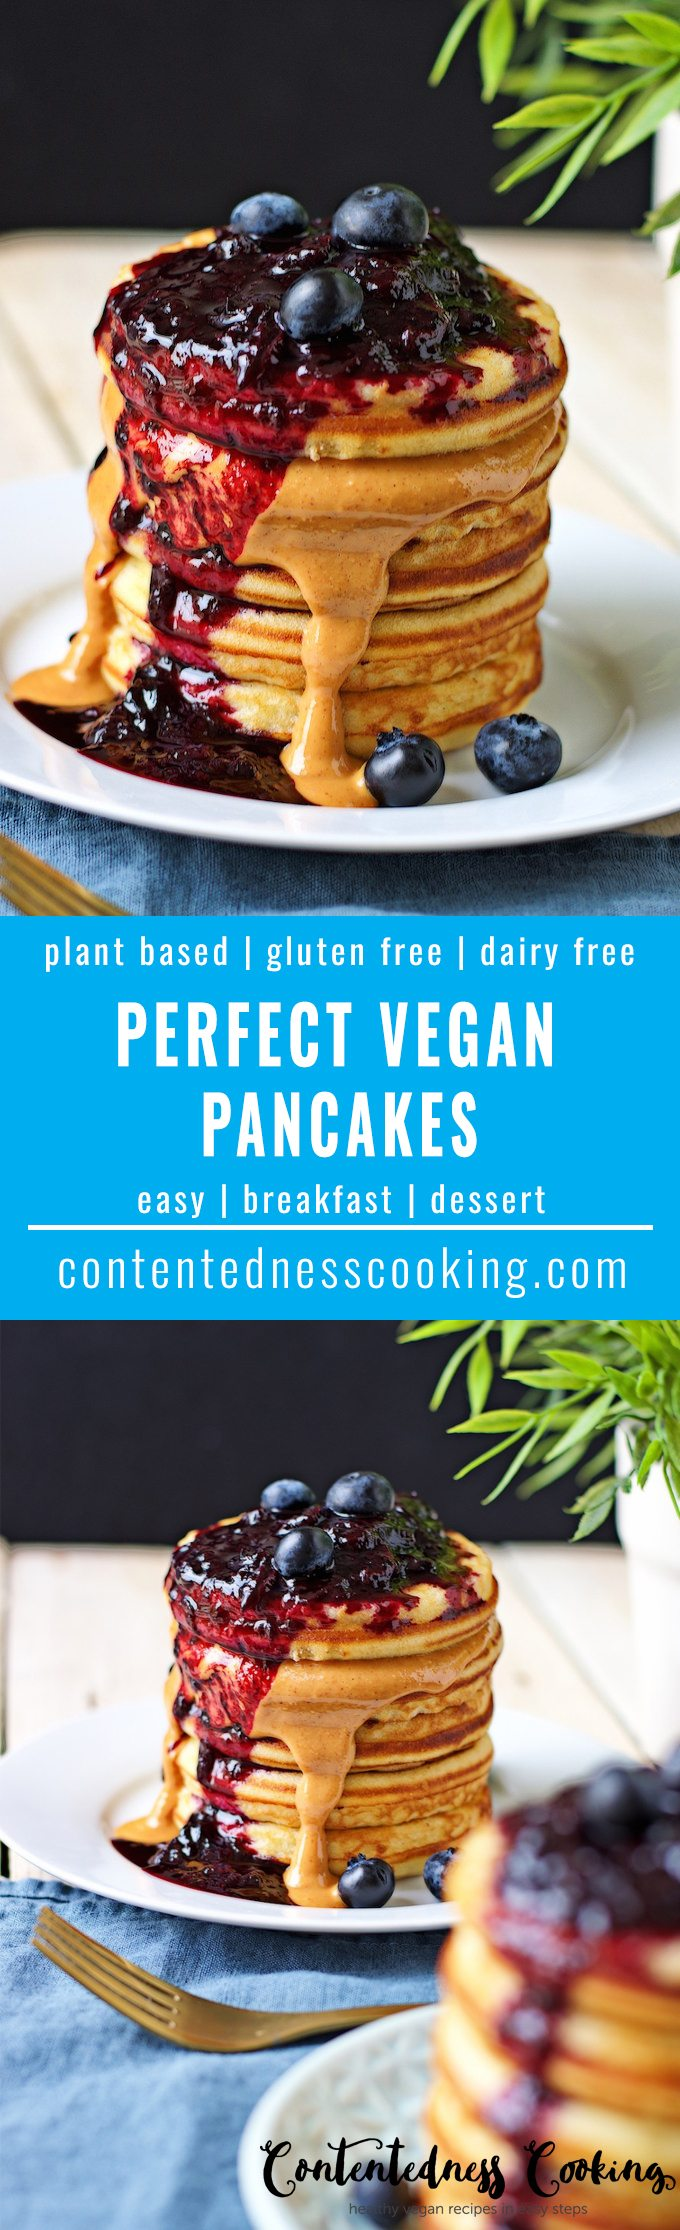 Perfect Vegan Pancakes | #vegan #contentednescooking #glutenfree